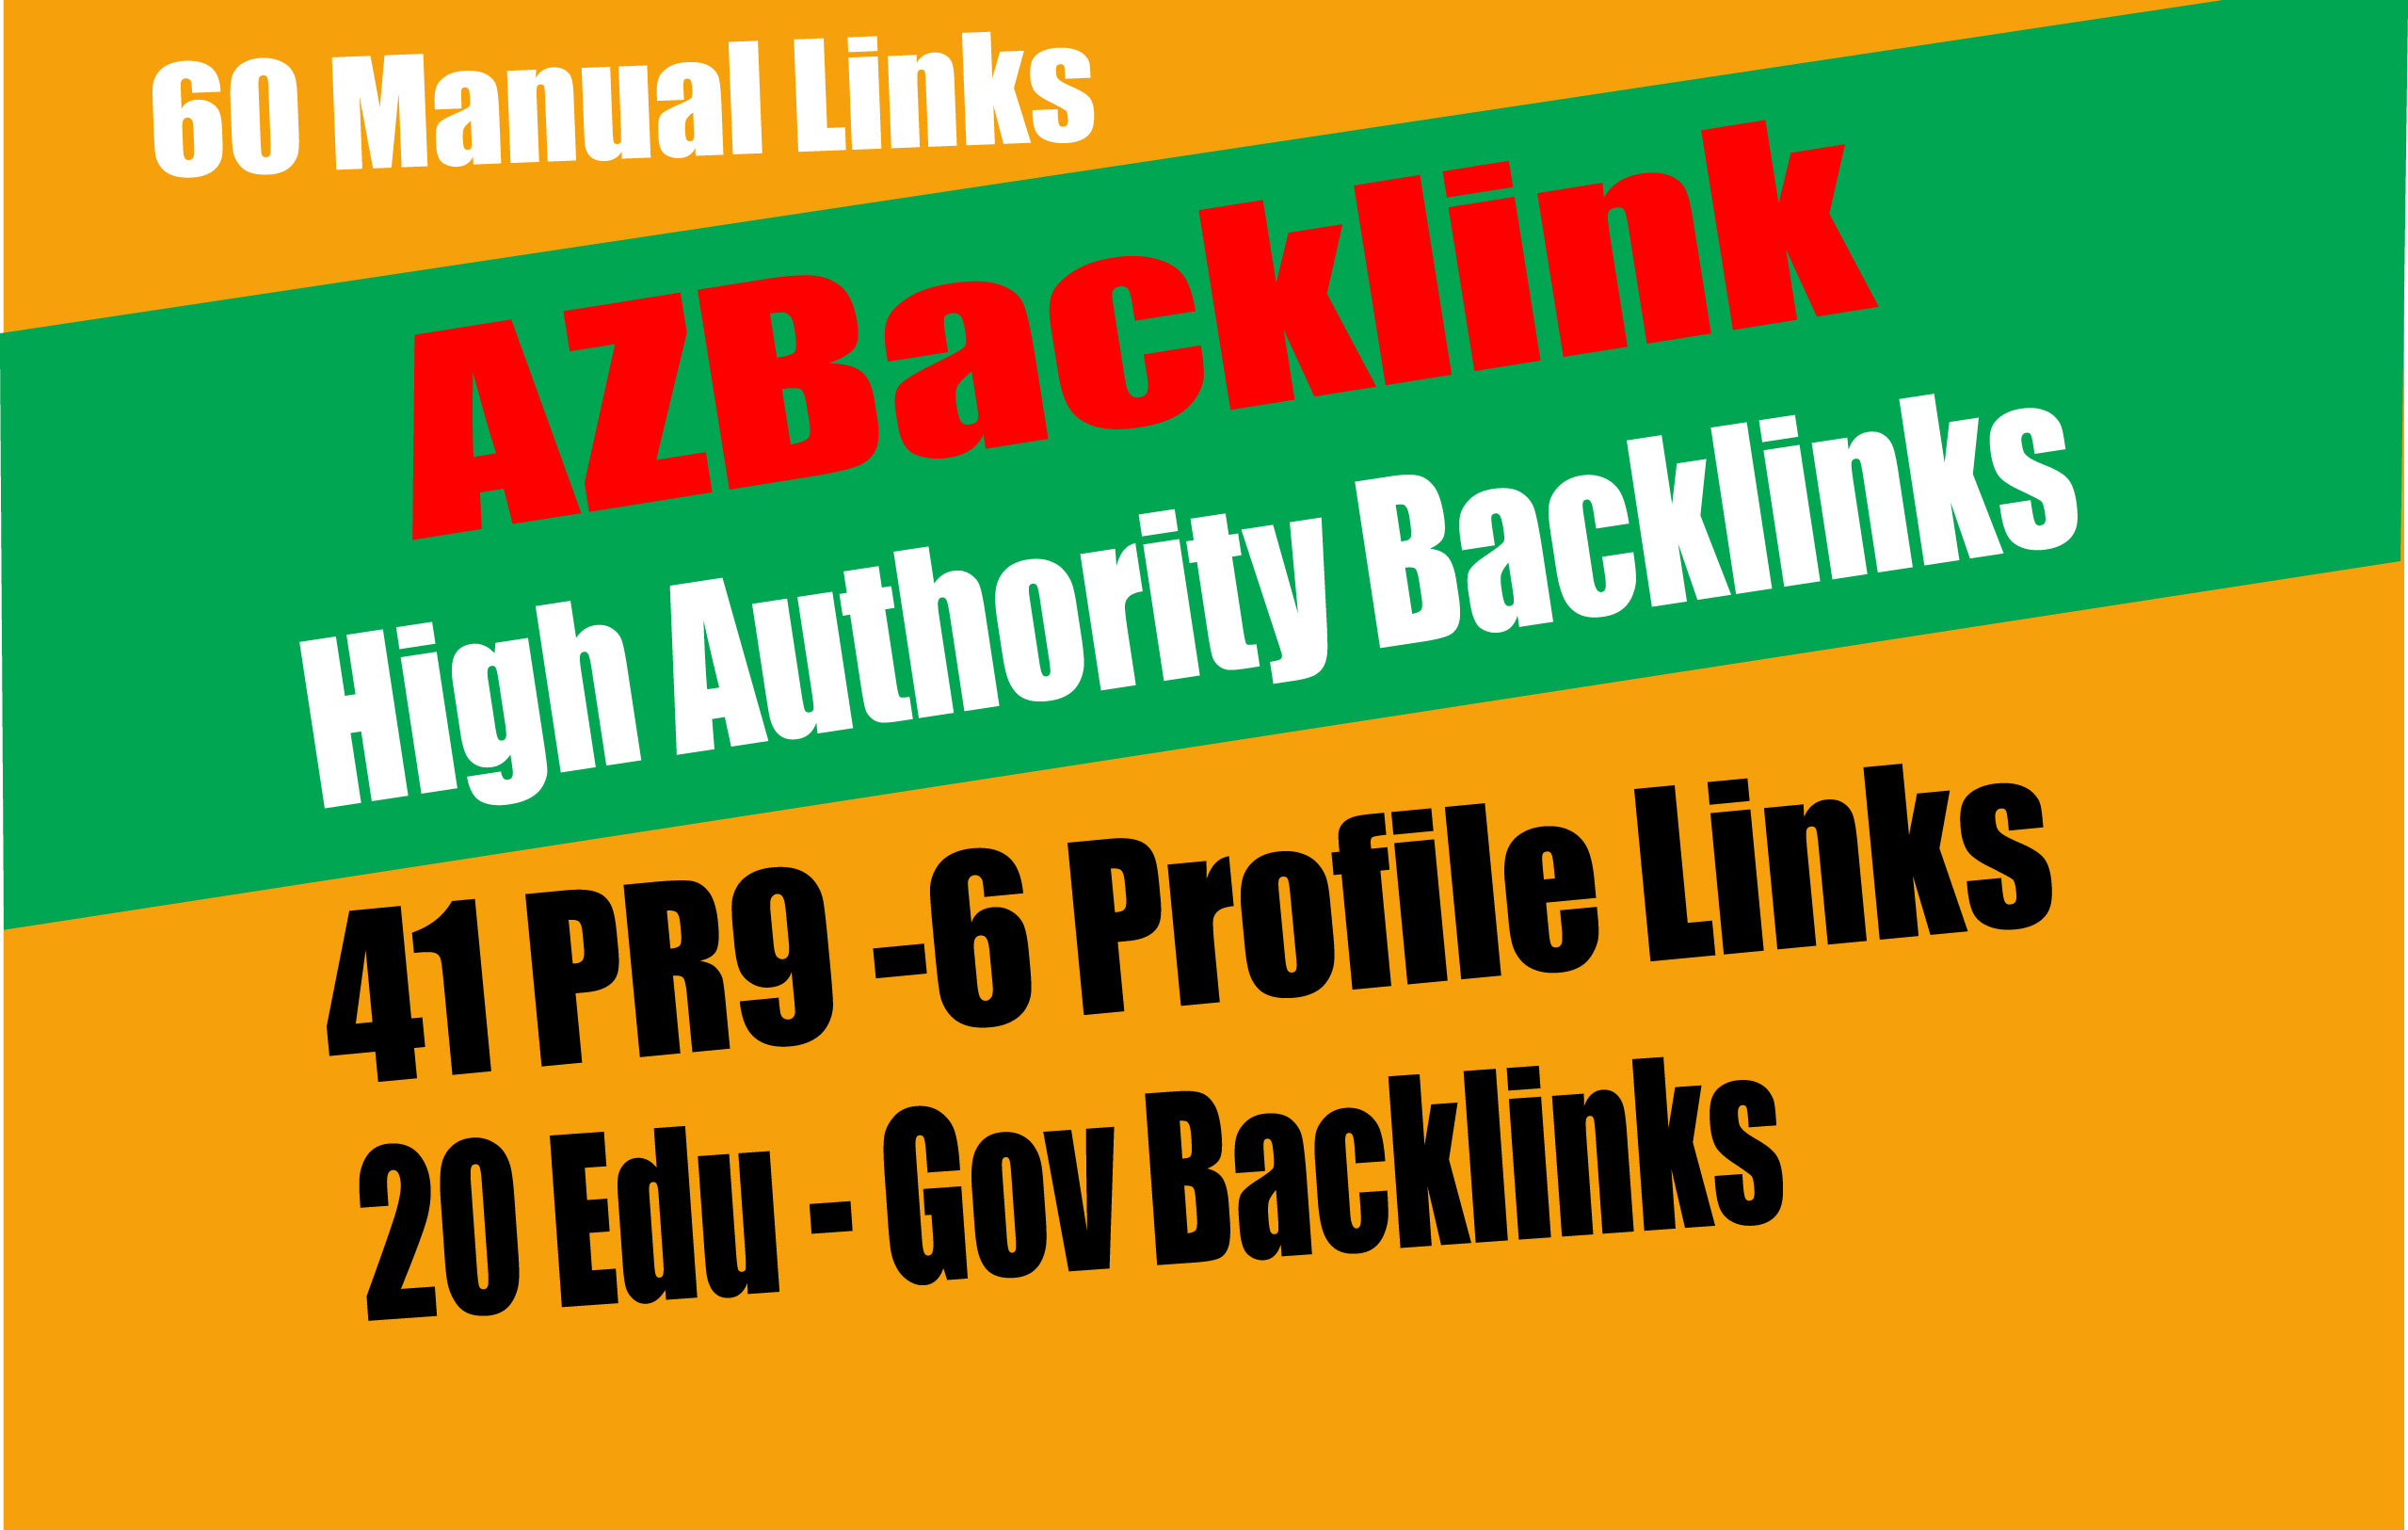 61 AZ Backlinks From 41 PR9 + 20 EDU GOV Backlinks From Authority Domain